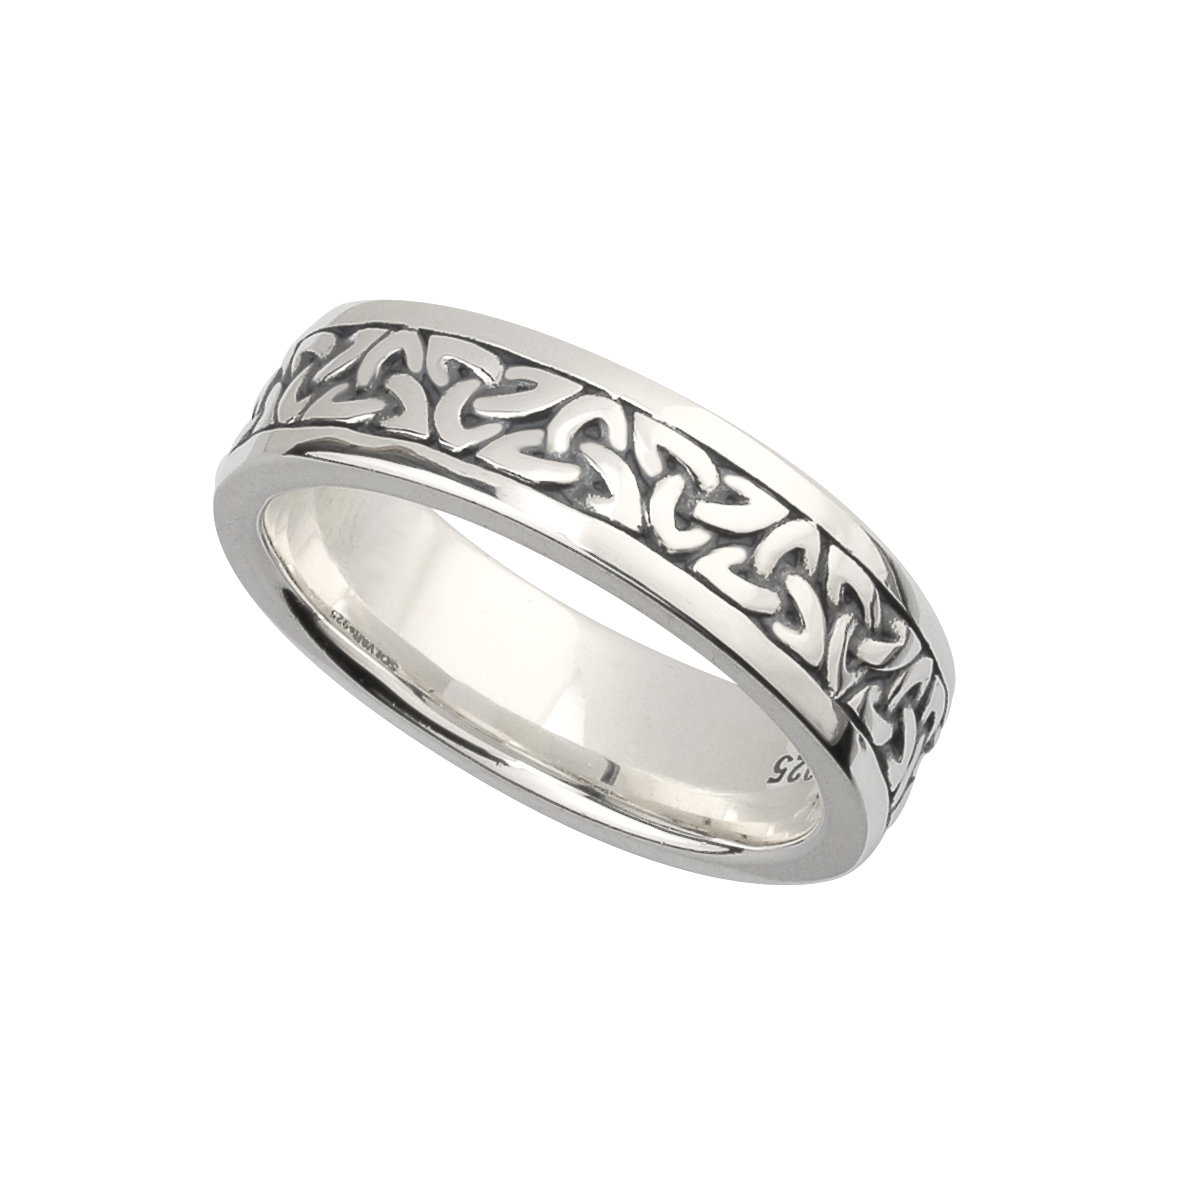 sterling silver trinity knot band ring for her s21011 from Solvar